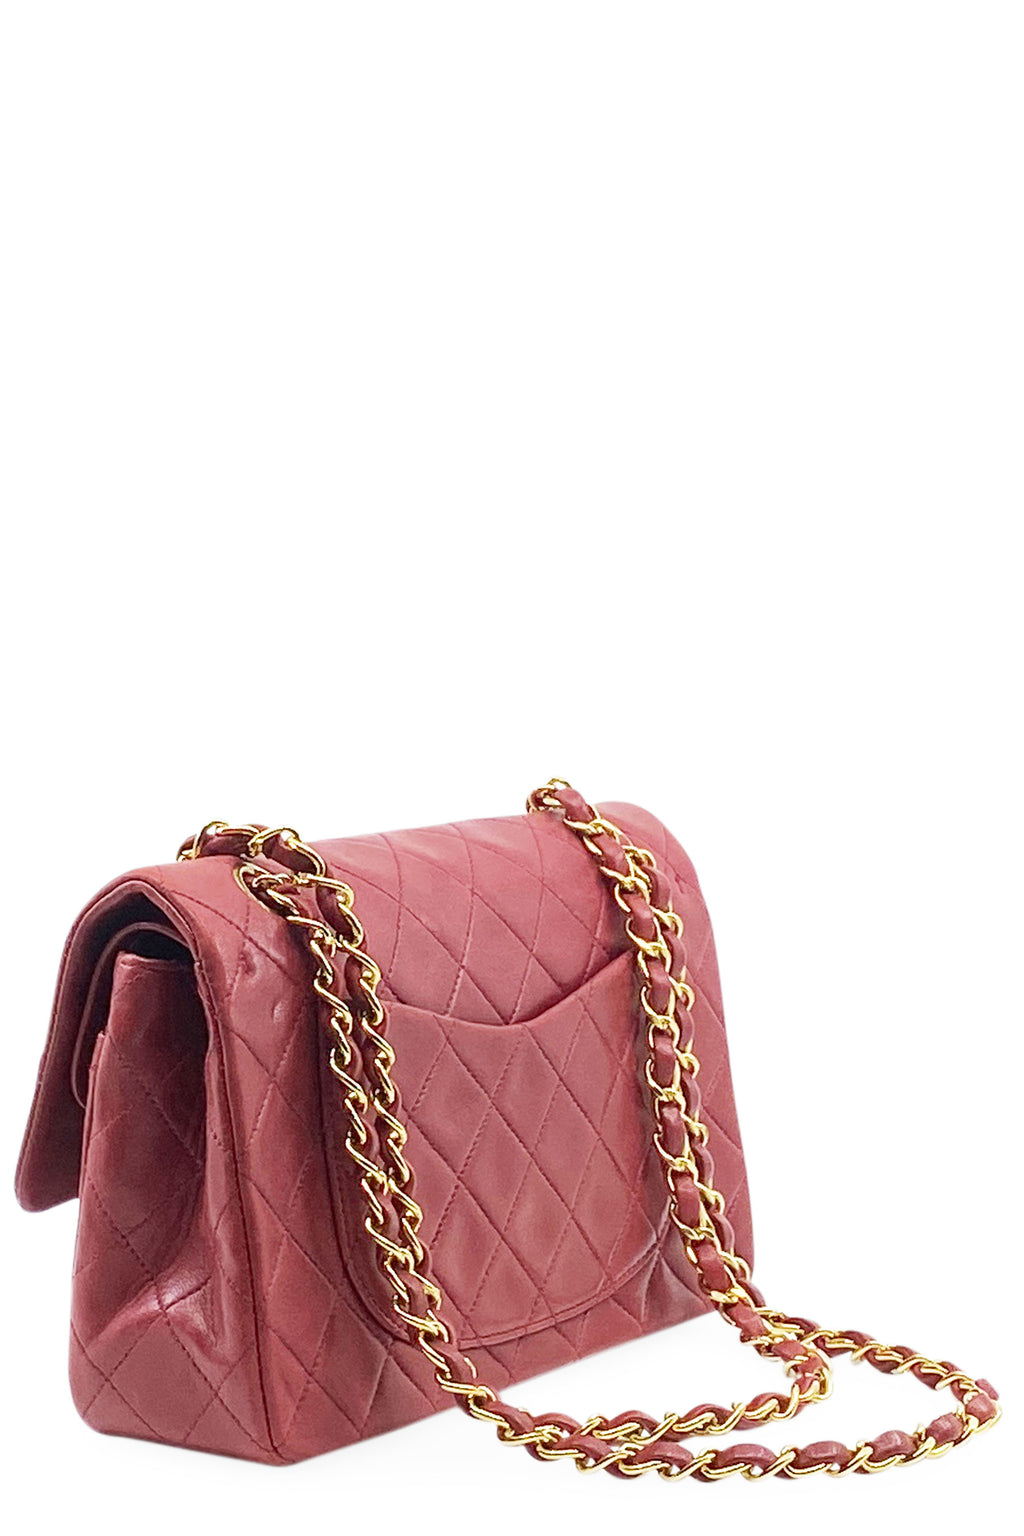 VALENTINES DAY SPECIAL: CHANEL Vintage Double Flap Bag Small